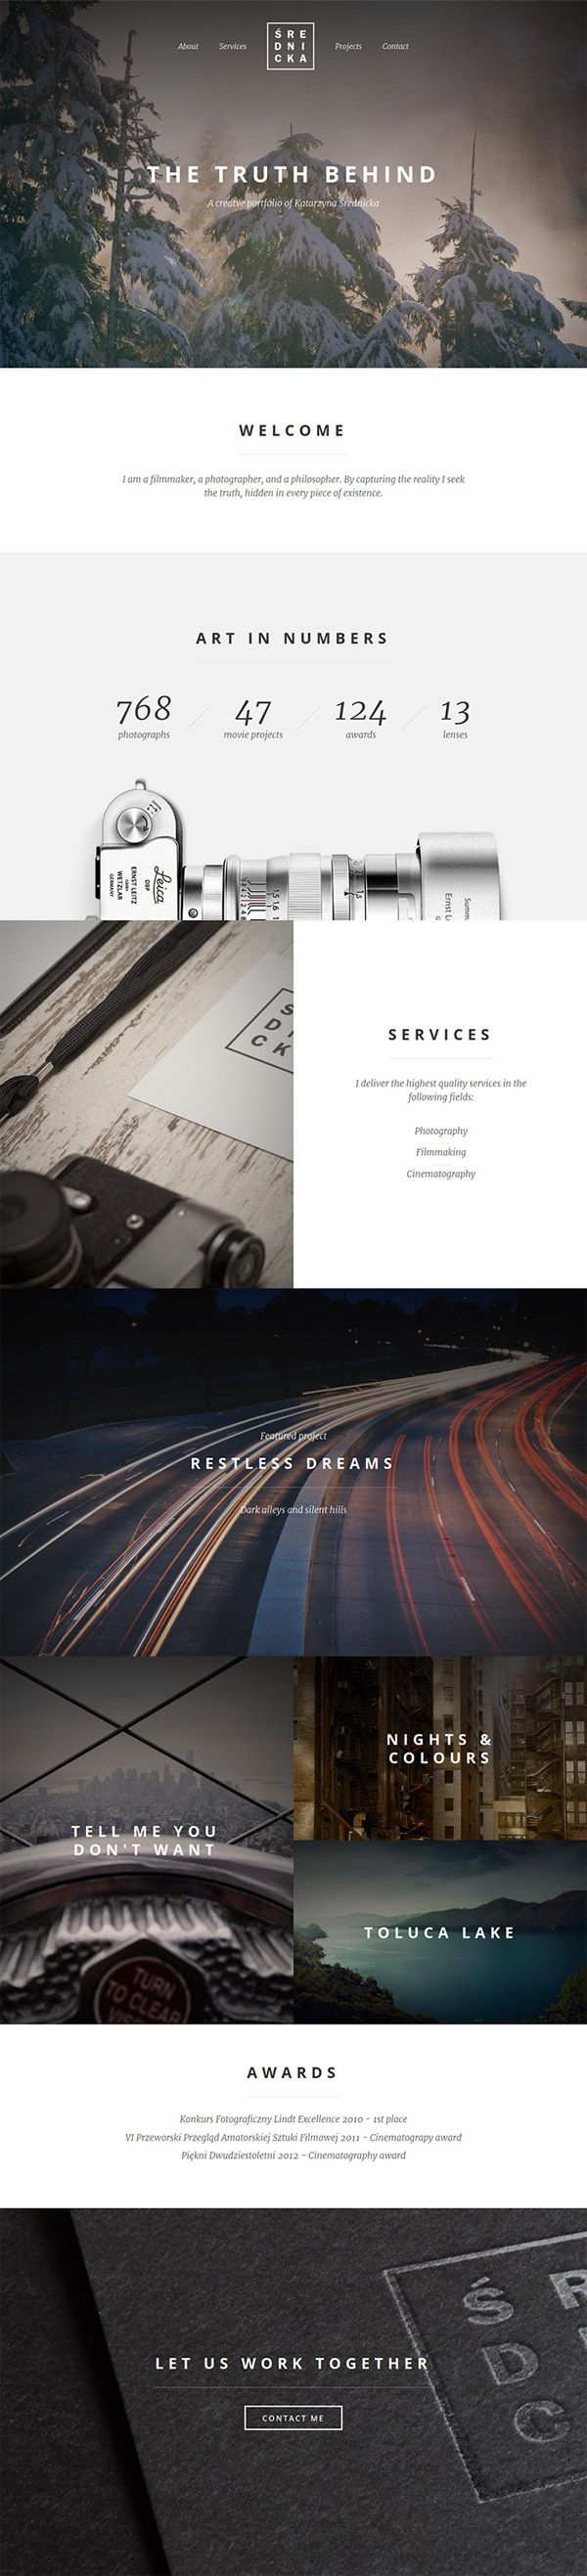 http://line25.com/articles/20-website-concepts-with-stunning-full-page-designs